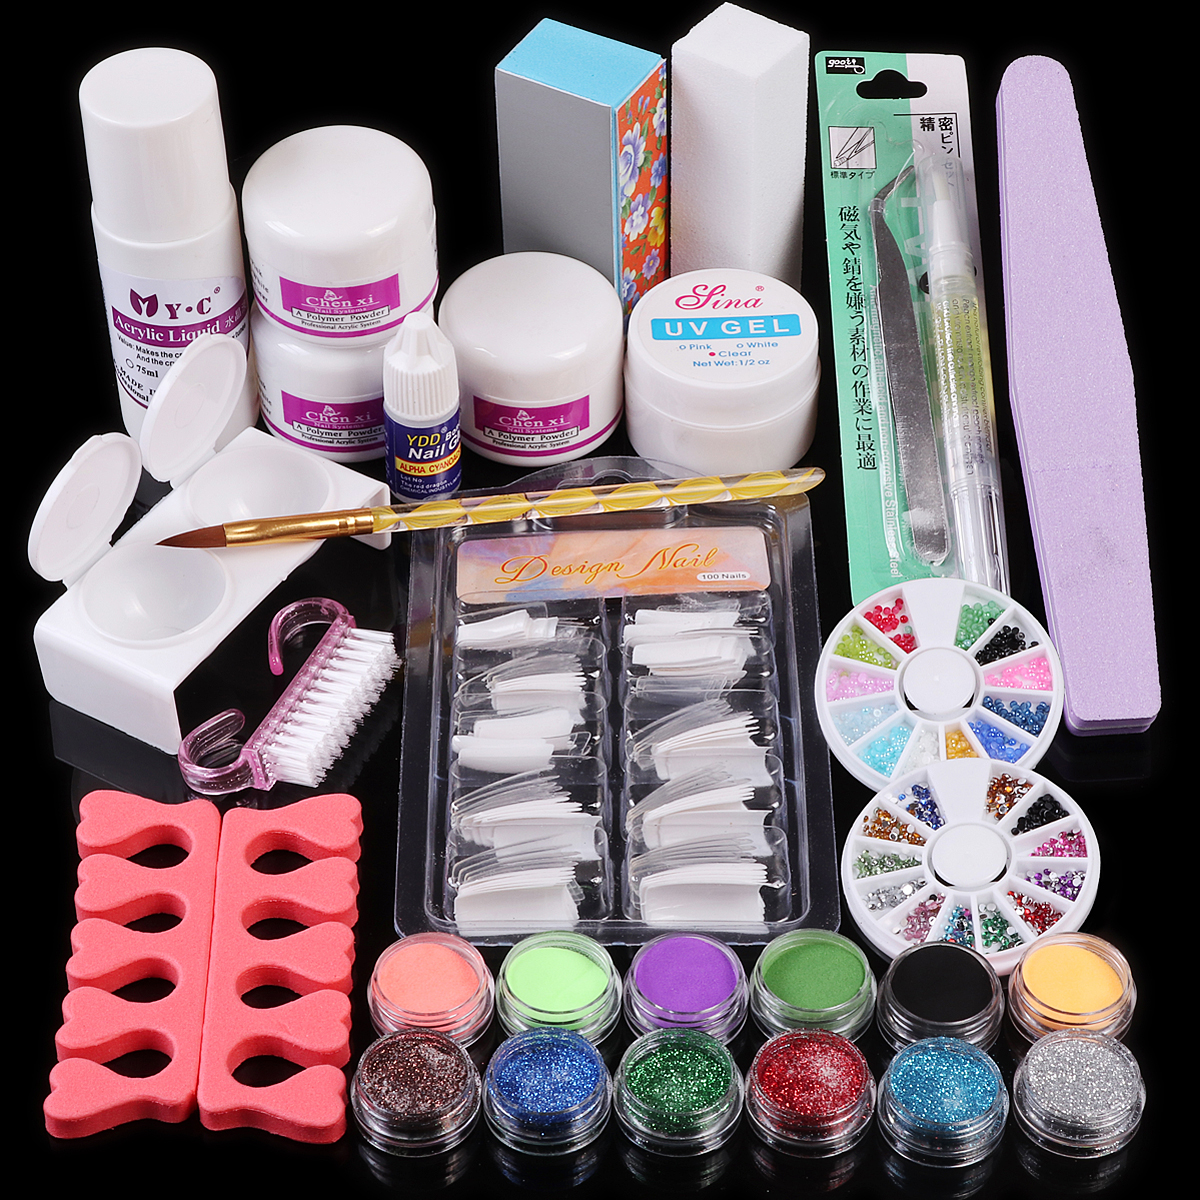 Nail Art Acrylic Powder Liquid Gel Glue Brush Tweezer Primer Rhinestones Glitter Buffer Files False Tips Manicure Tools Kit Set 48 bottles lot 5 designs mixed diy nail art decoration kit rhinestones beads sequins paillettes nail glitter powder acrylic tips